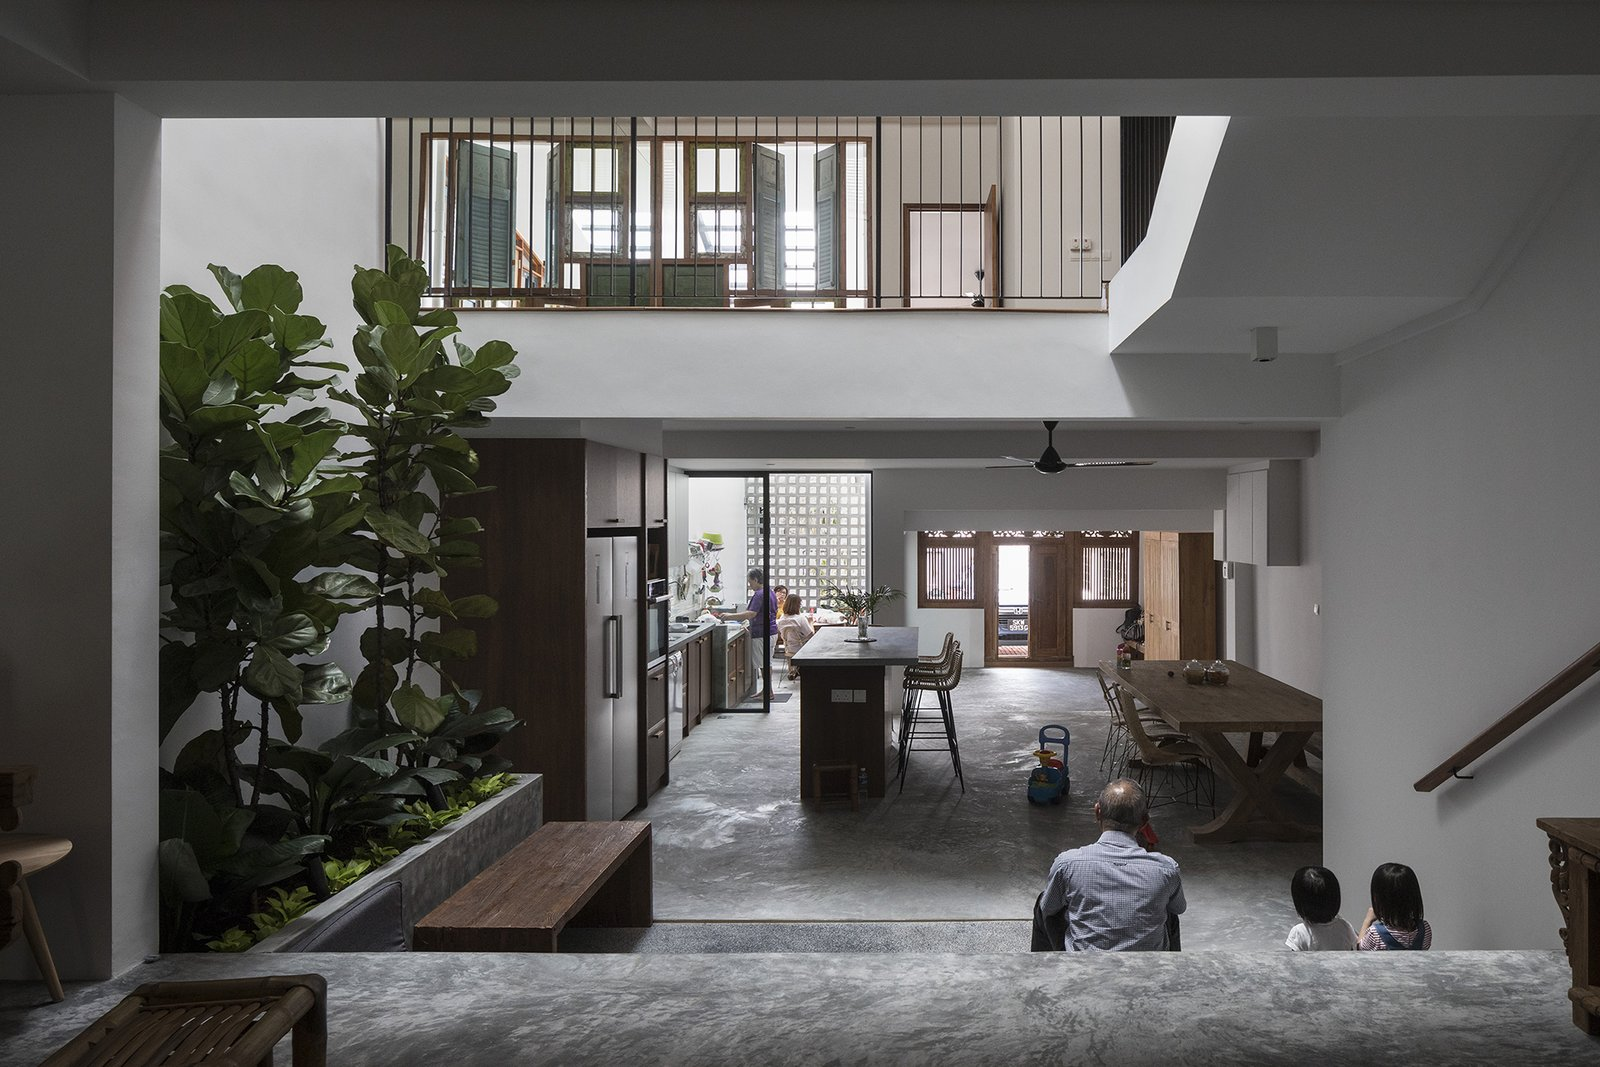 Heng House by Goy Architects, Upcycling, Timber Windows, Courtyard, Tropical Living, Indoor Garden, Split Levels